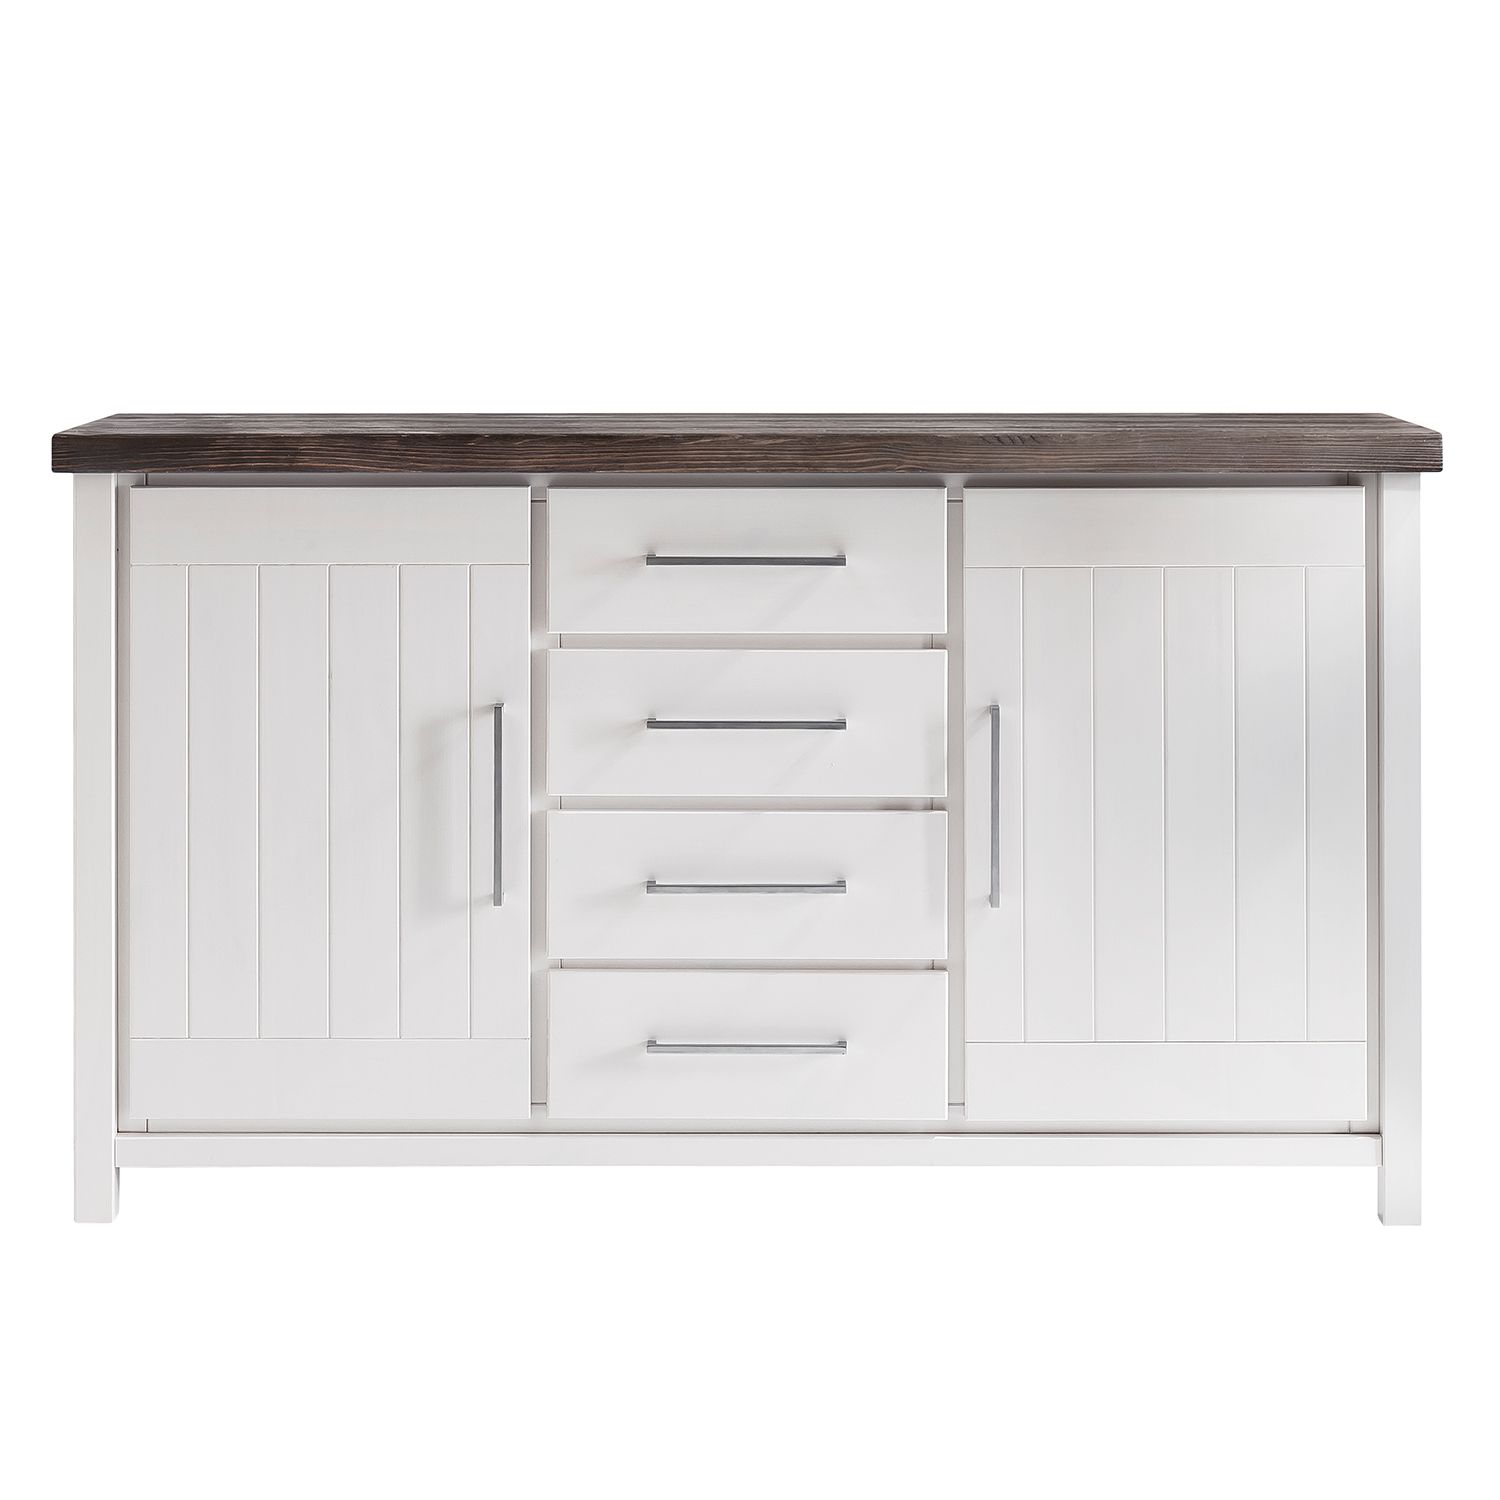 Commode Lillerod - Pin massif - Blanc / Marron, Landhaus Classic